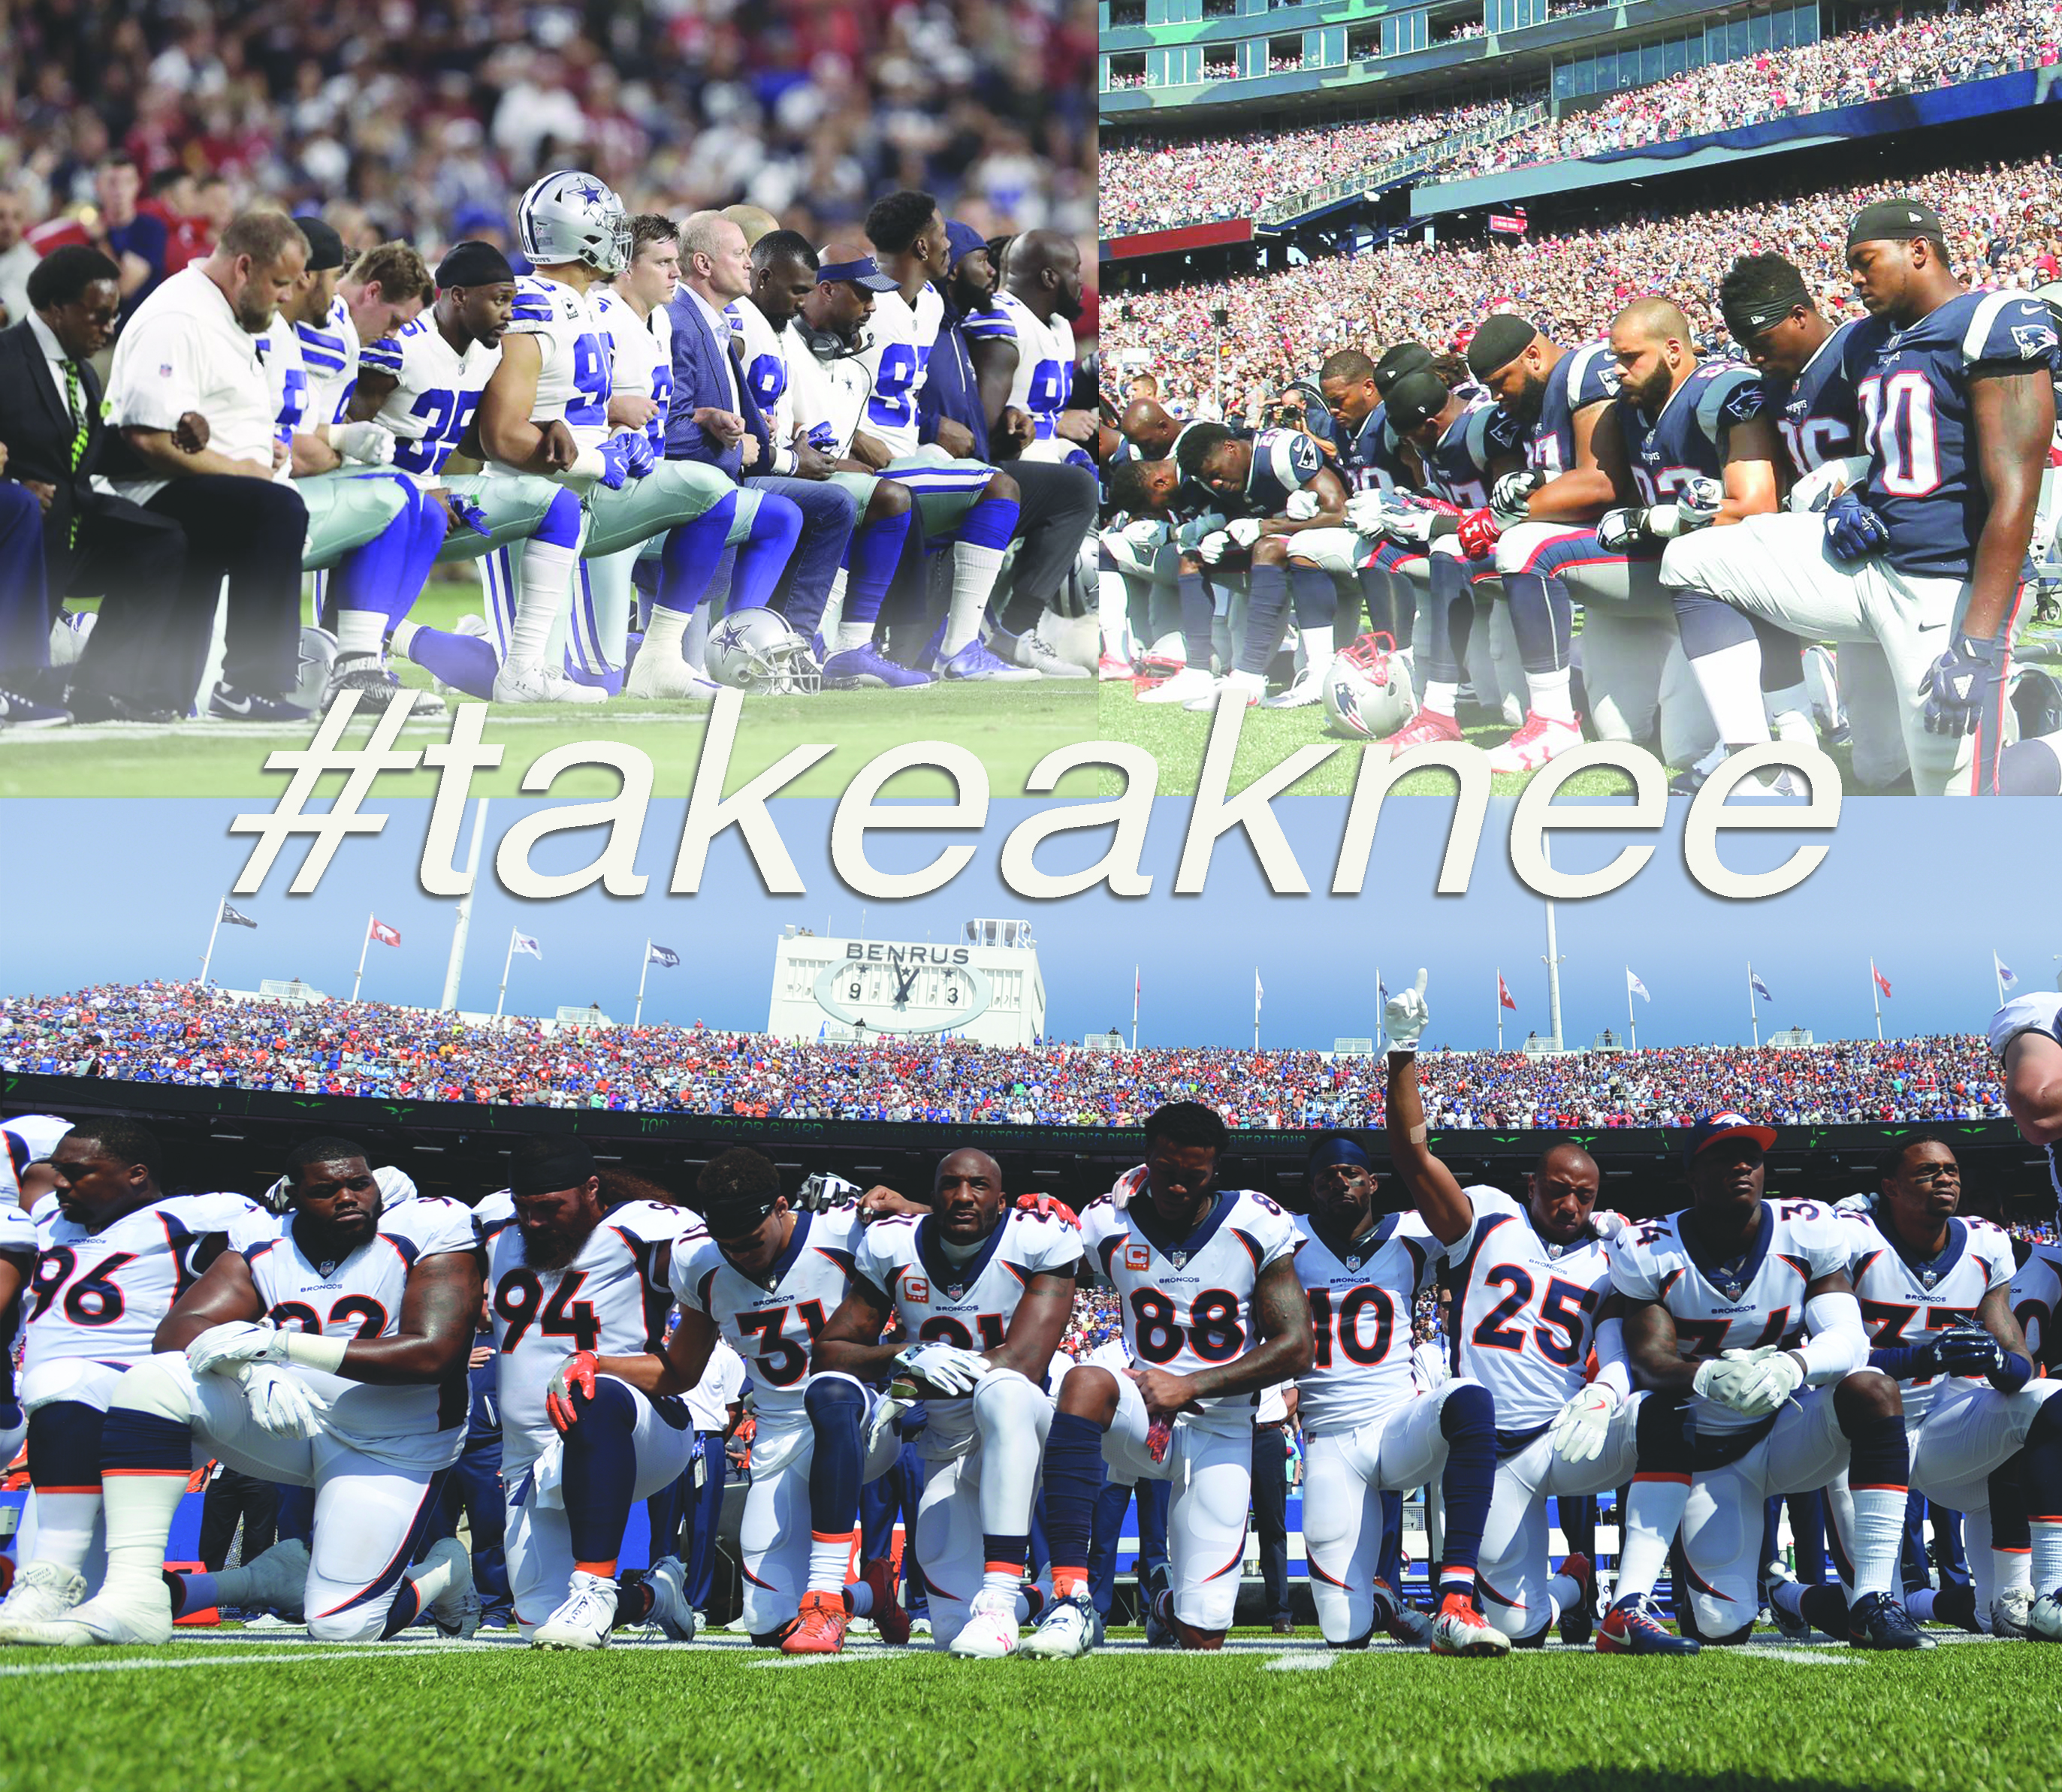 takeaknee (Commentary) Ying yang